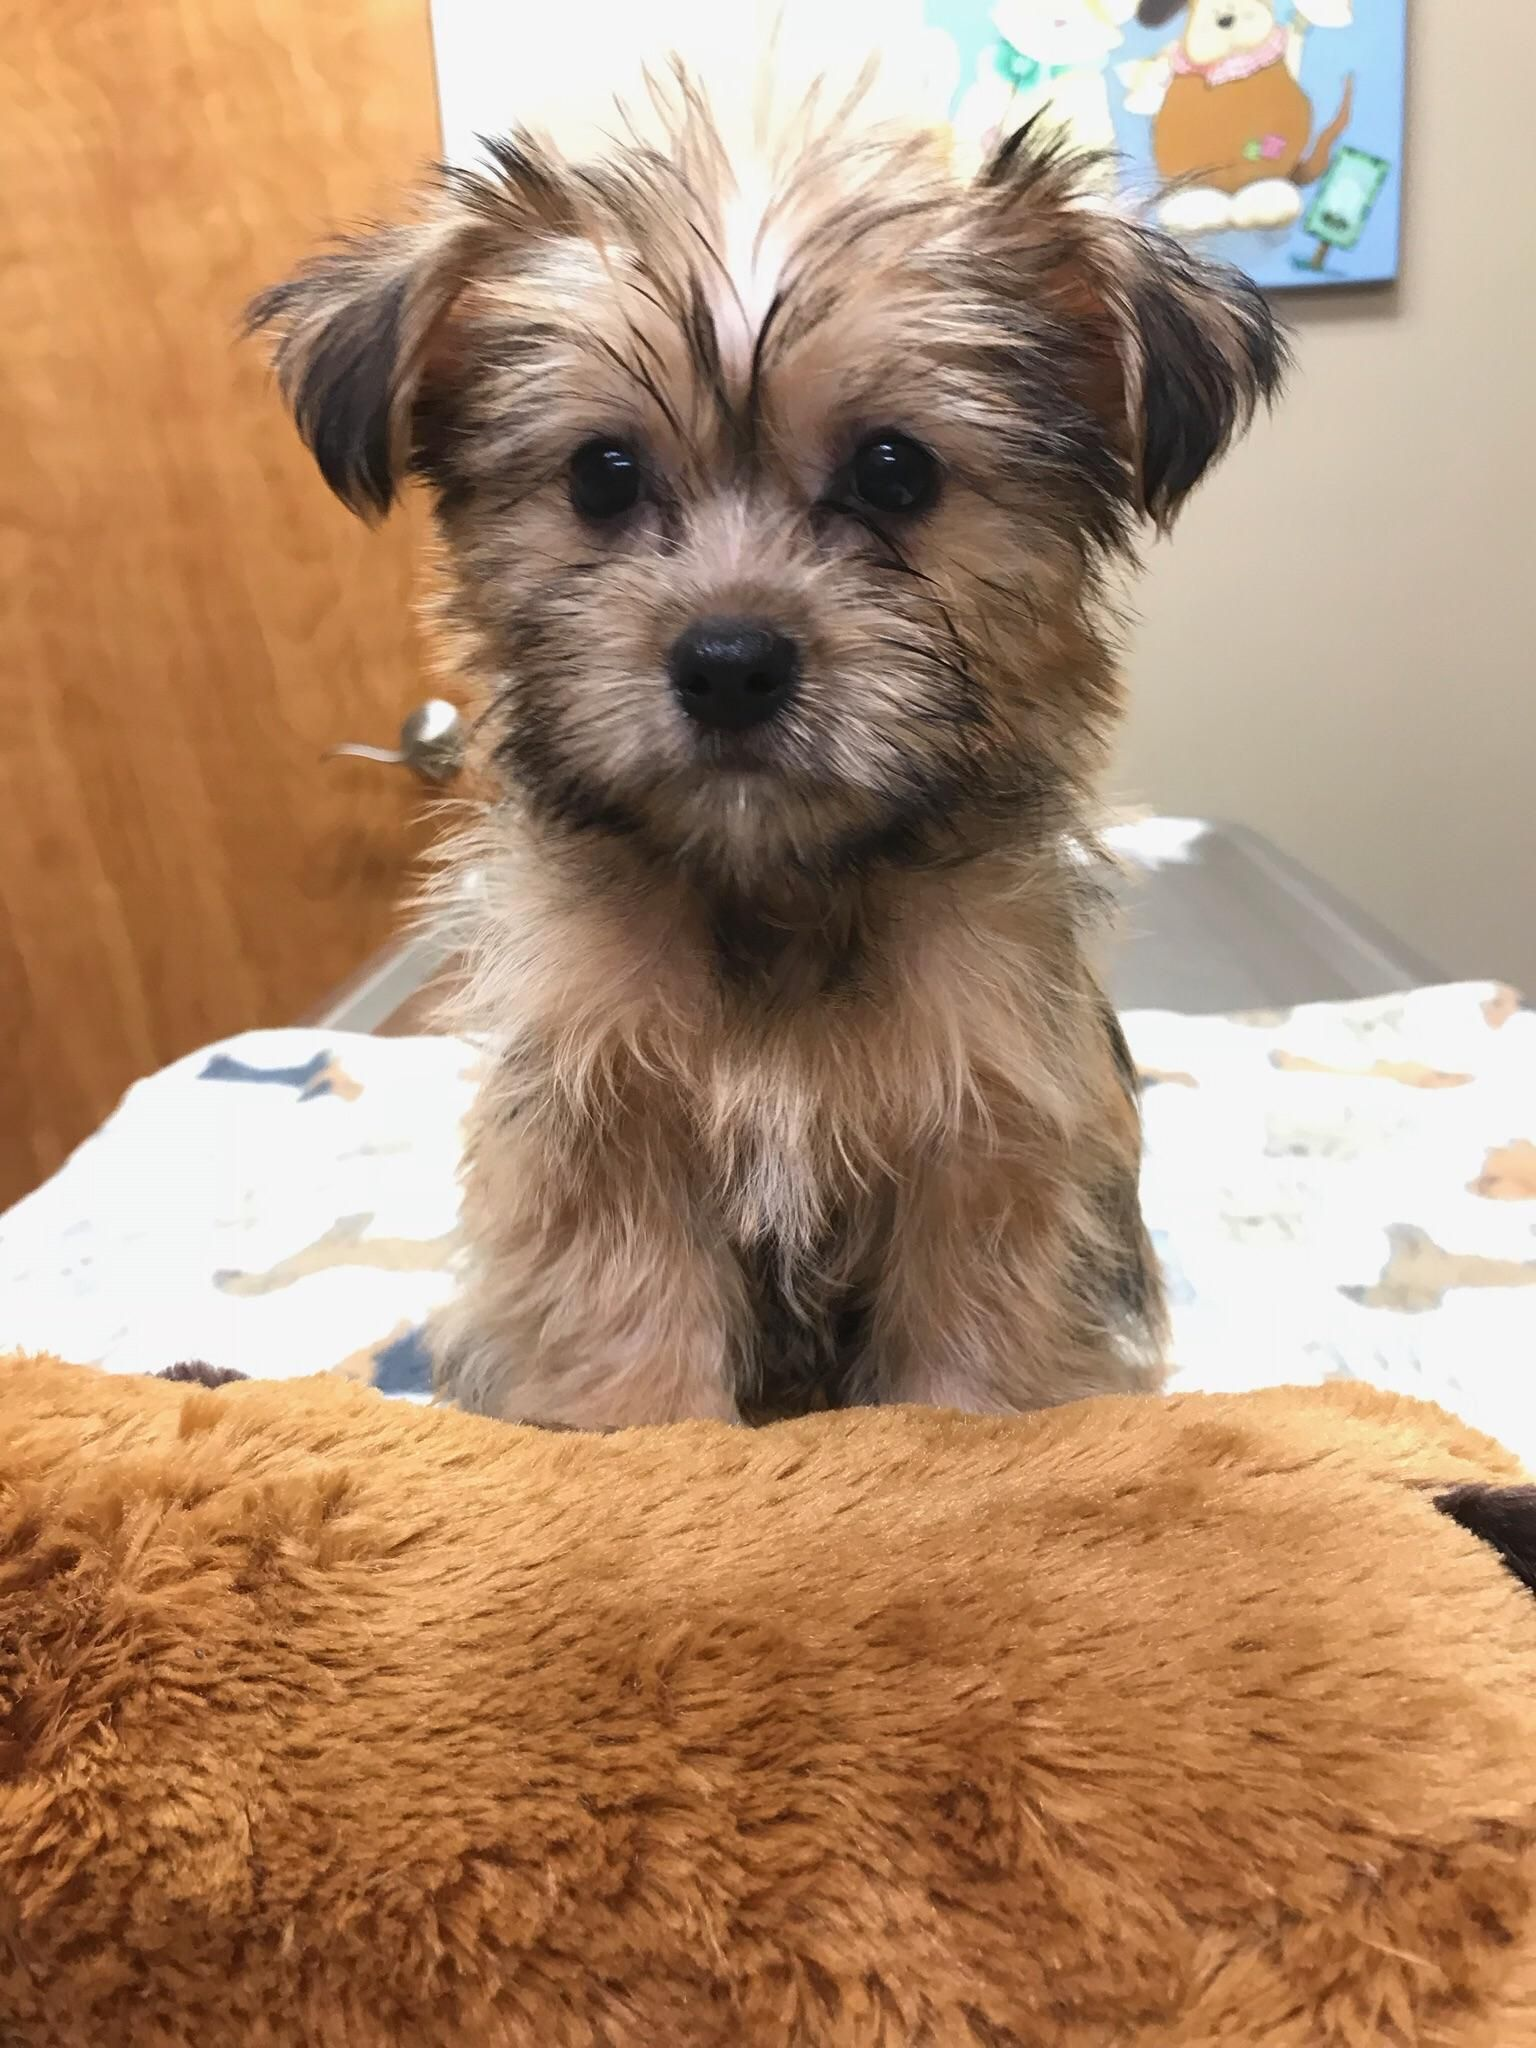 My Family And I Just Purchased This Shorkie Yorkie Shitzu Mix On